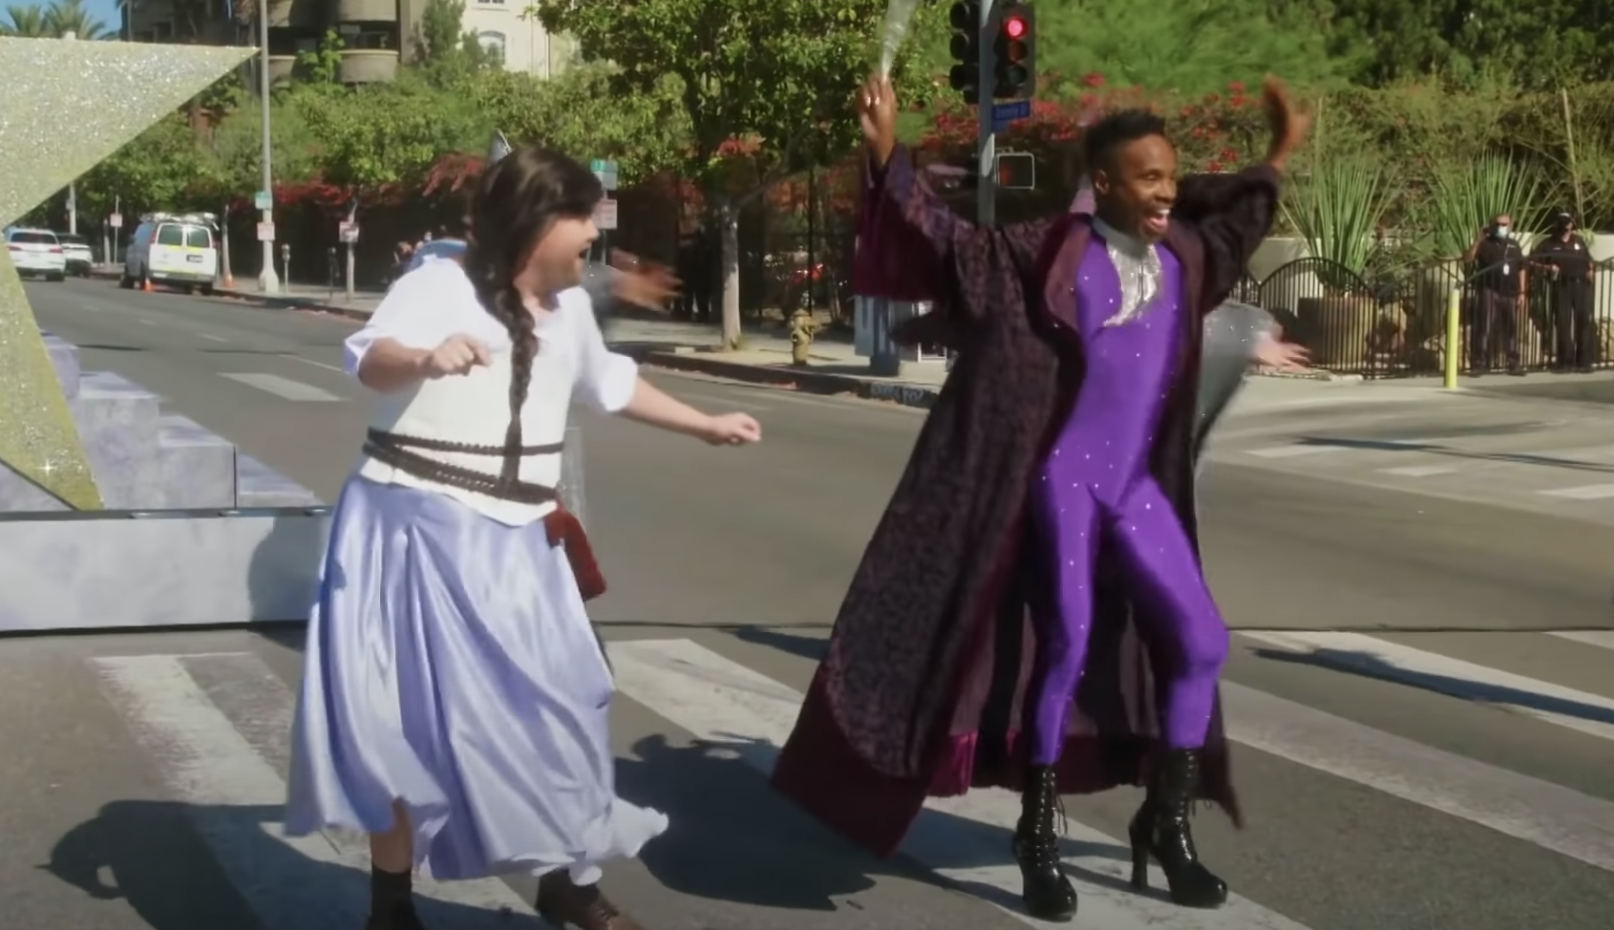 Billy dressed in a tight purple bodysuit, platform boots, and a long coat dances with James in a dress